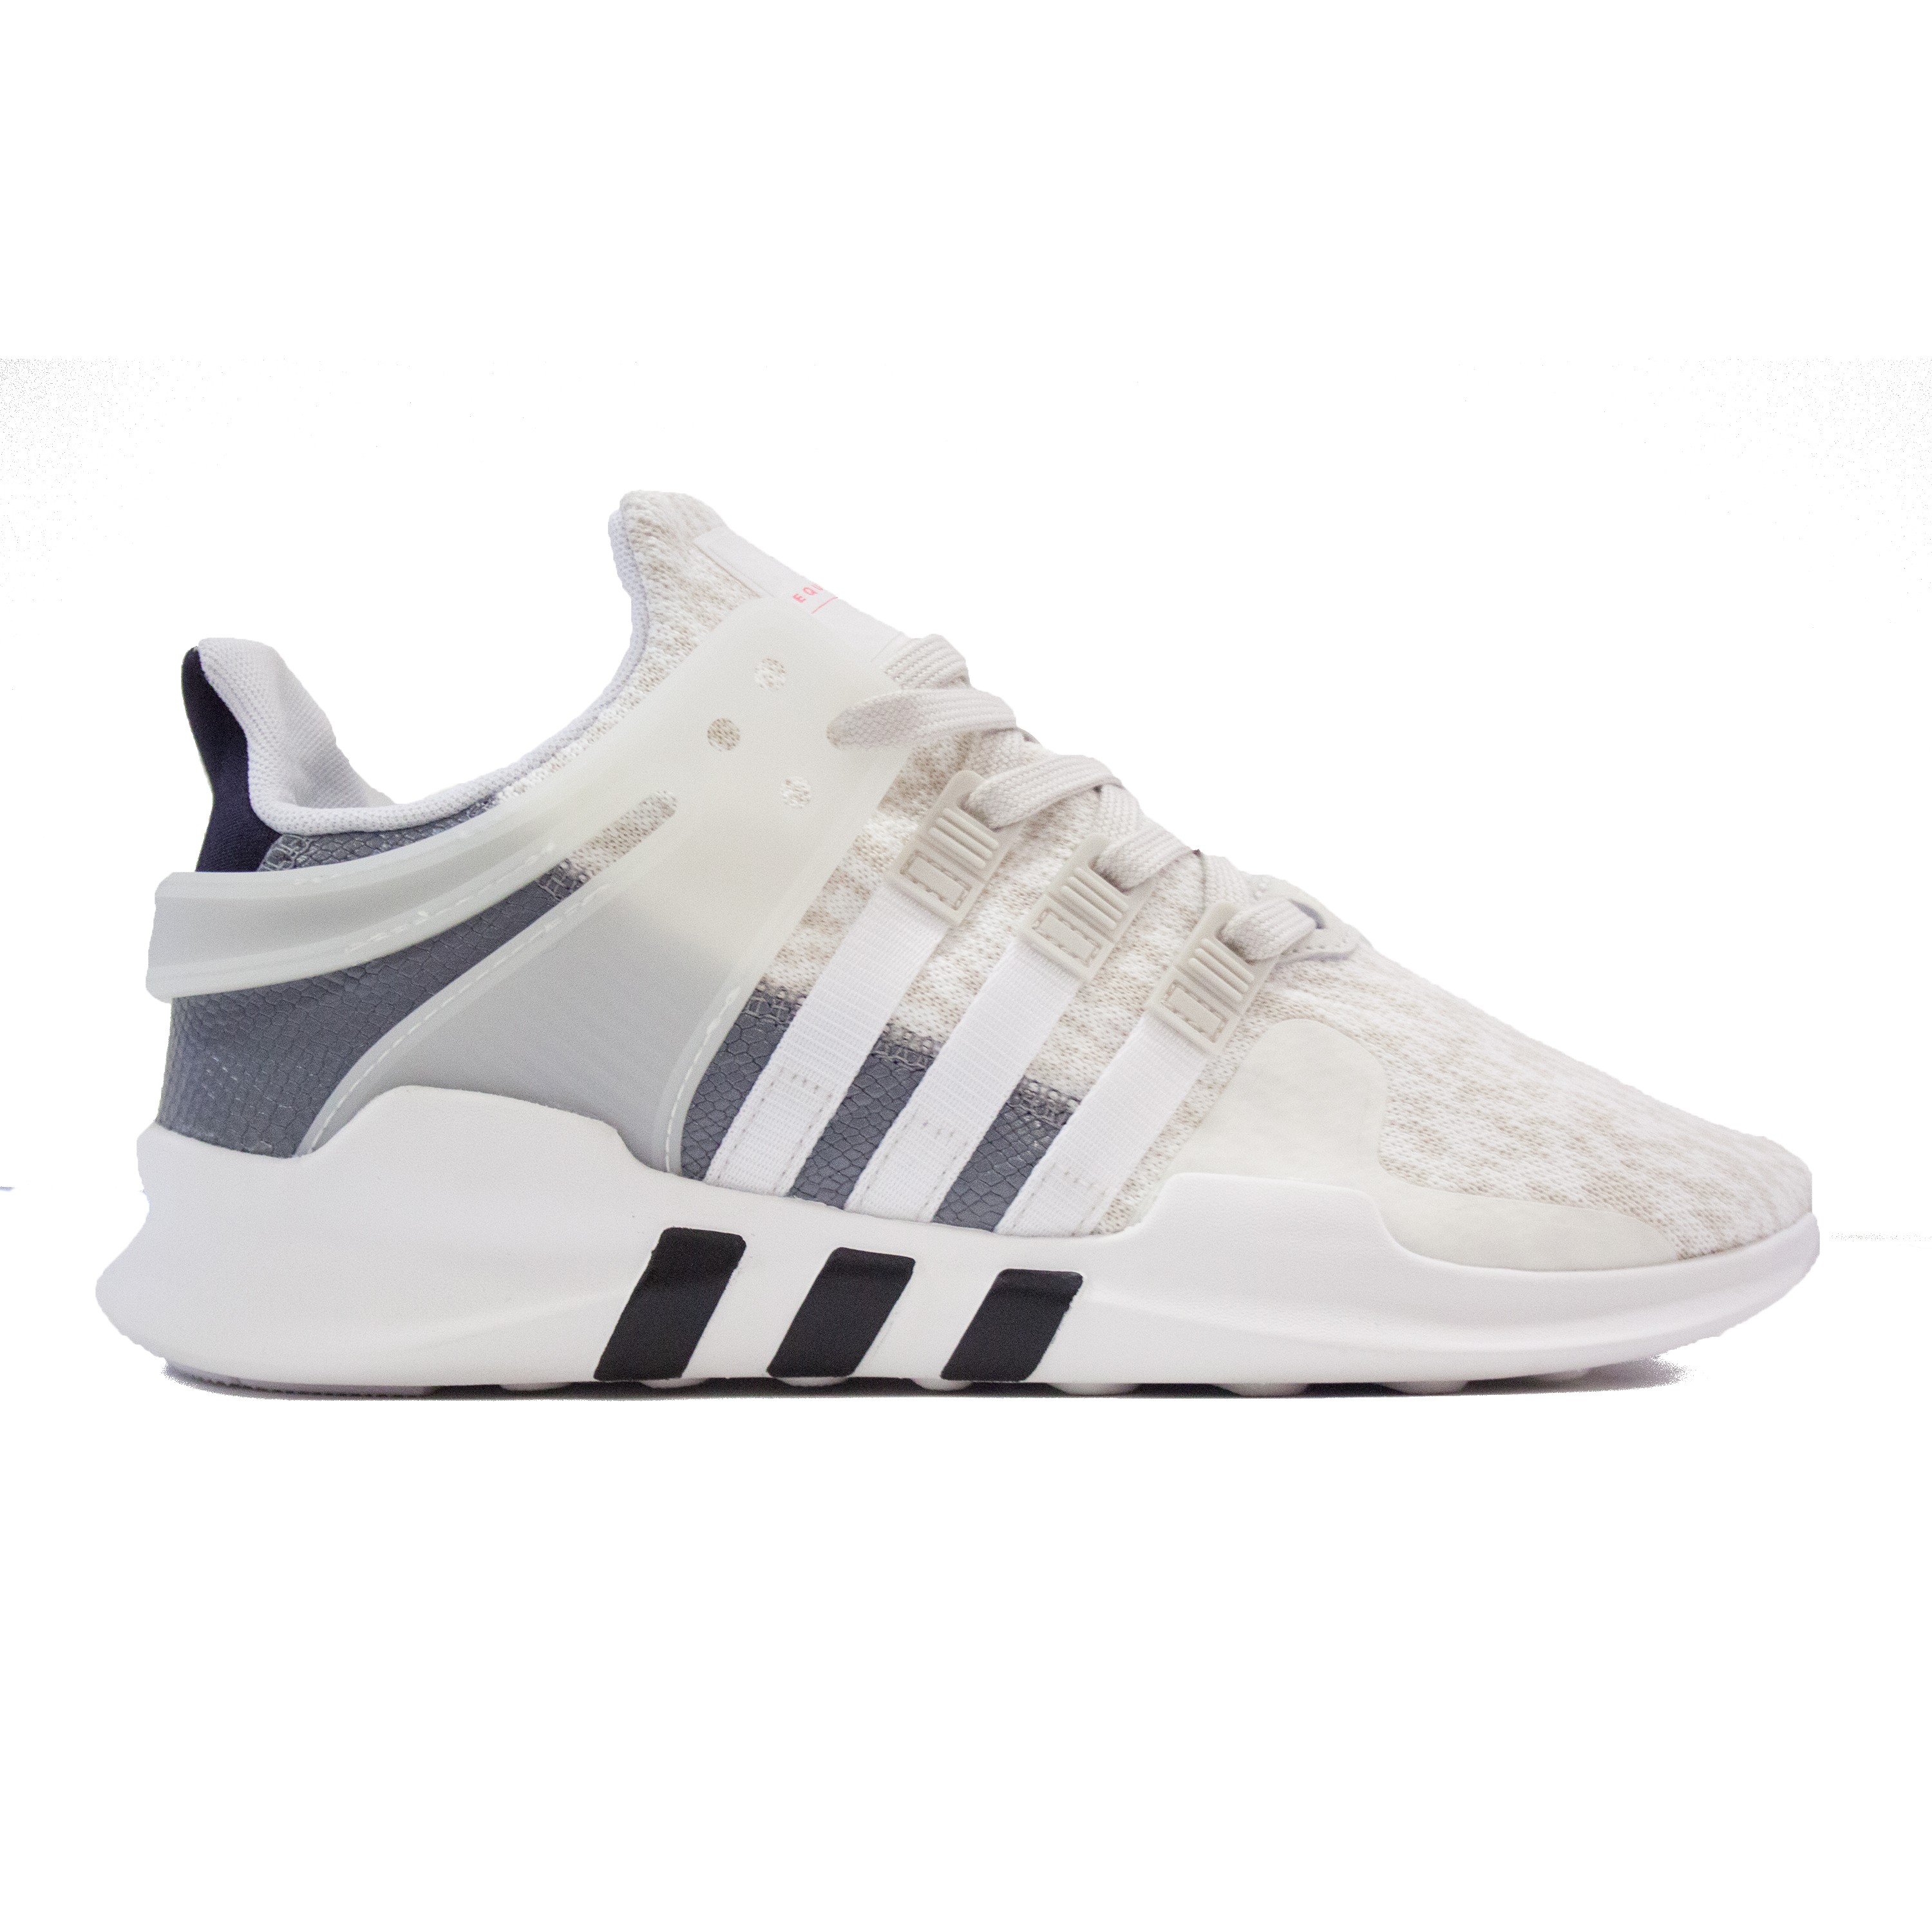 reputable site 3b06a 92604 adidas Originals Equipment Support ADV W. (Clear BrownFootwear ...